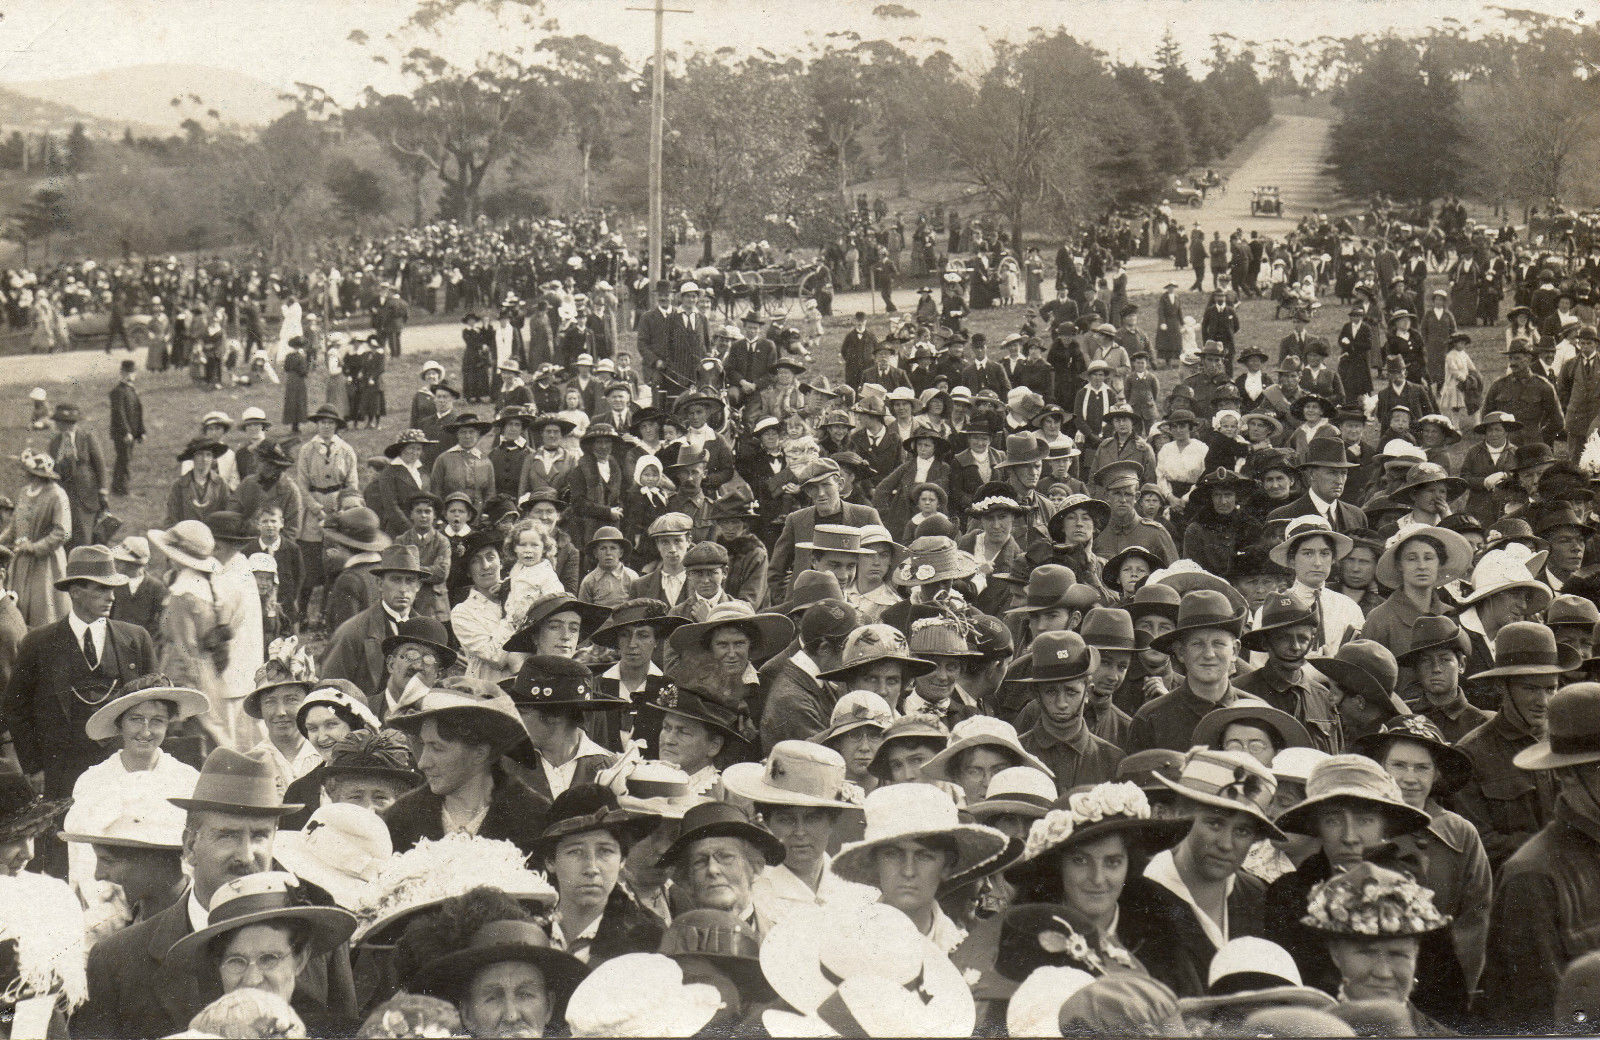 First ANZAC Day in Hobart 1916